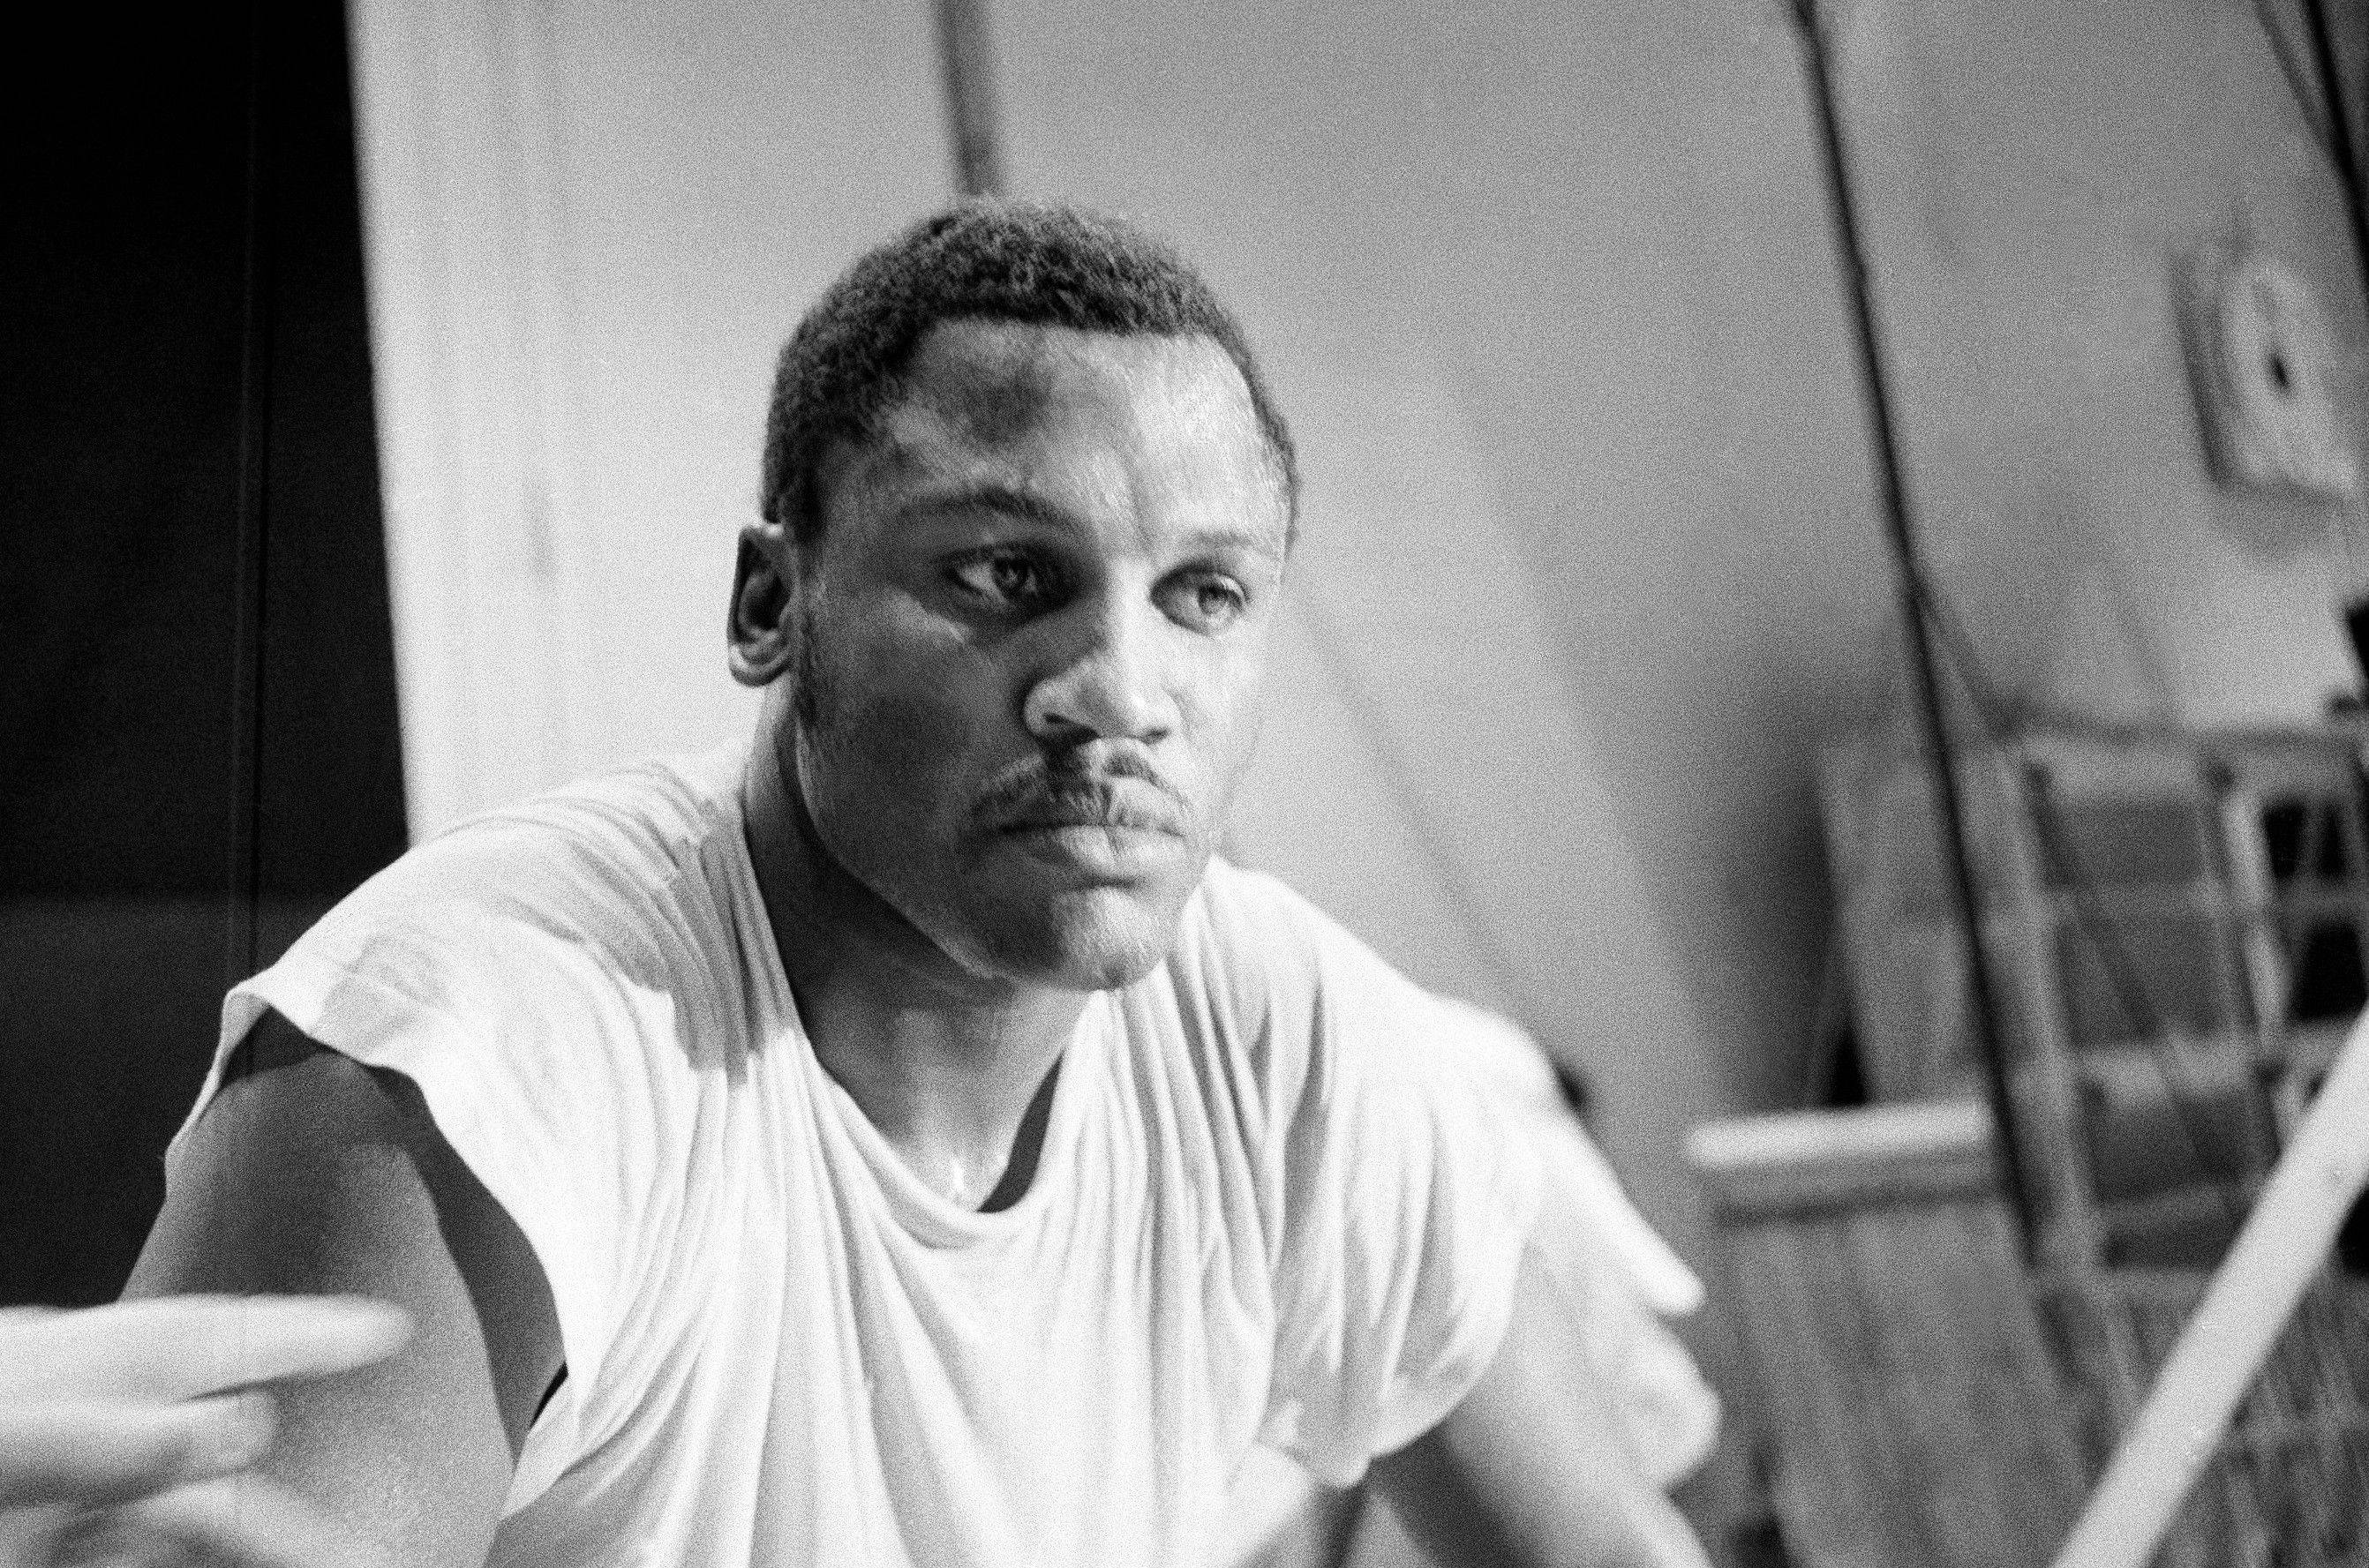 In this Feb. 3, 1970, file photo, Joe Frazier pauses after a workout at New York's Madison Square Garden. Frazier, the former heavyweight champion who handed Muhammad Ali his first defeat yet had to live forever in his shadow, has died after a brief final fight with liver cancer. He was 67. The family issued a release confirming the boxer's death on Monday night, Nov. 7, 2011.